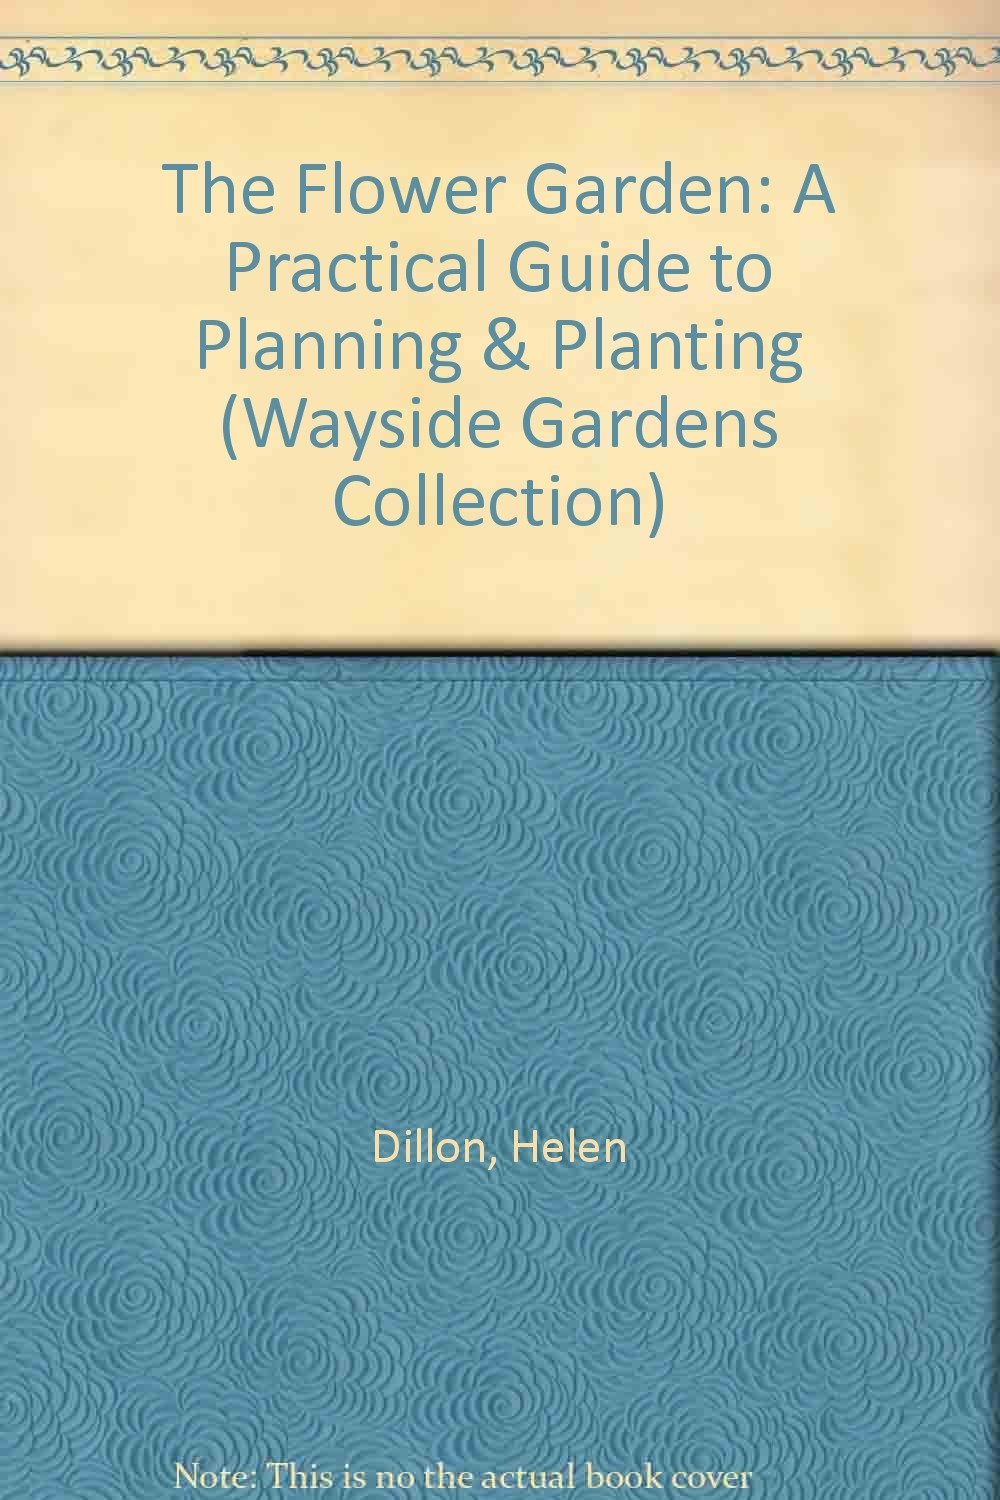 The Flower Garden: A Practical Guide to Planning and Planting (The Wayside Gardens Collection) by Sterling